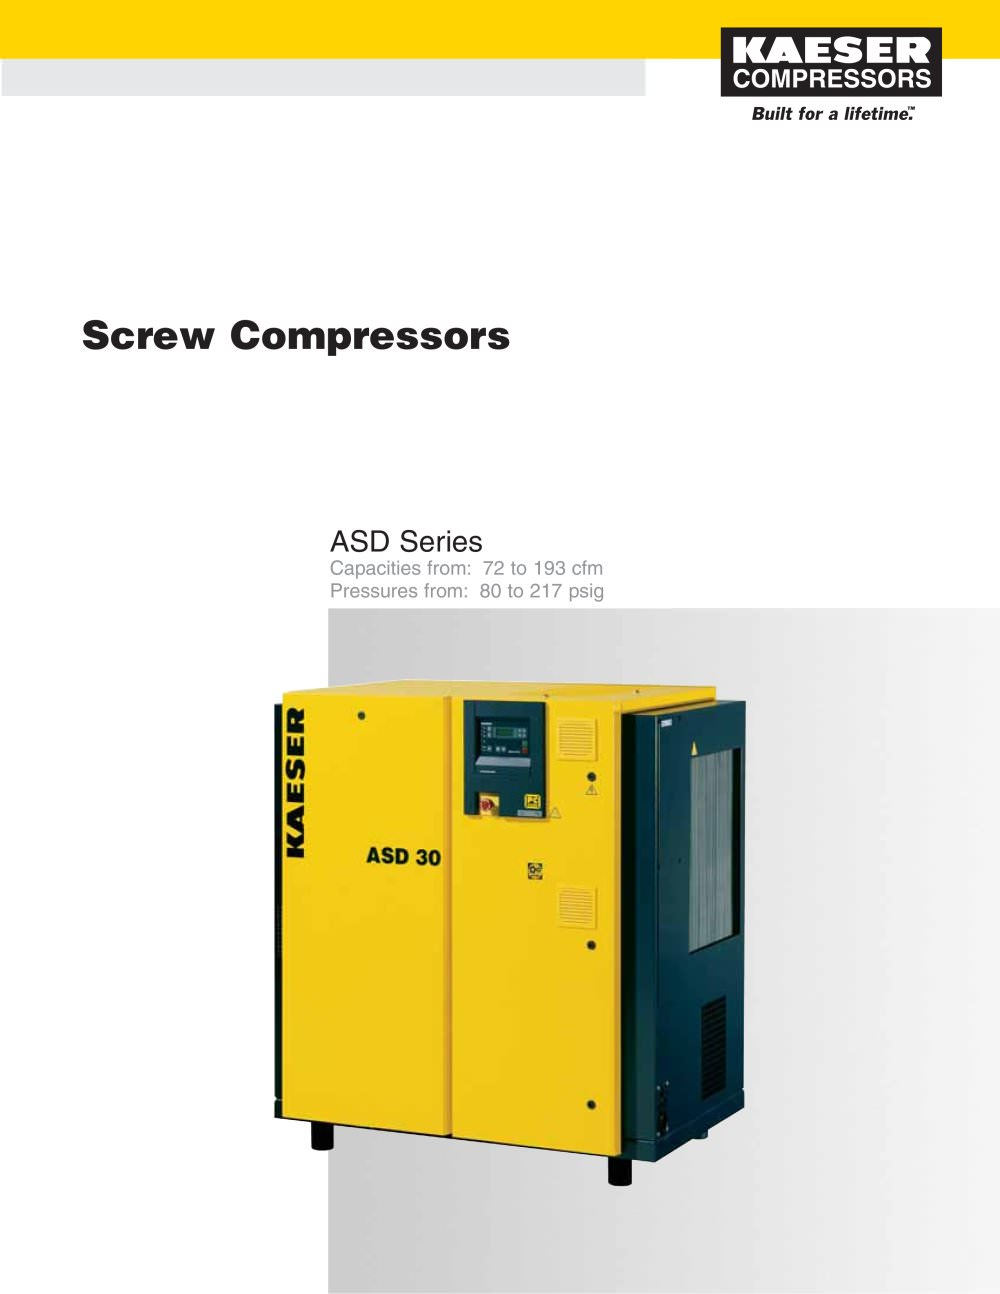 ASD Series Compressors - 1 / 6 Pages